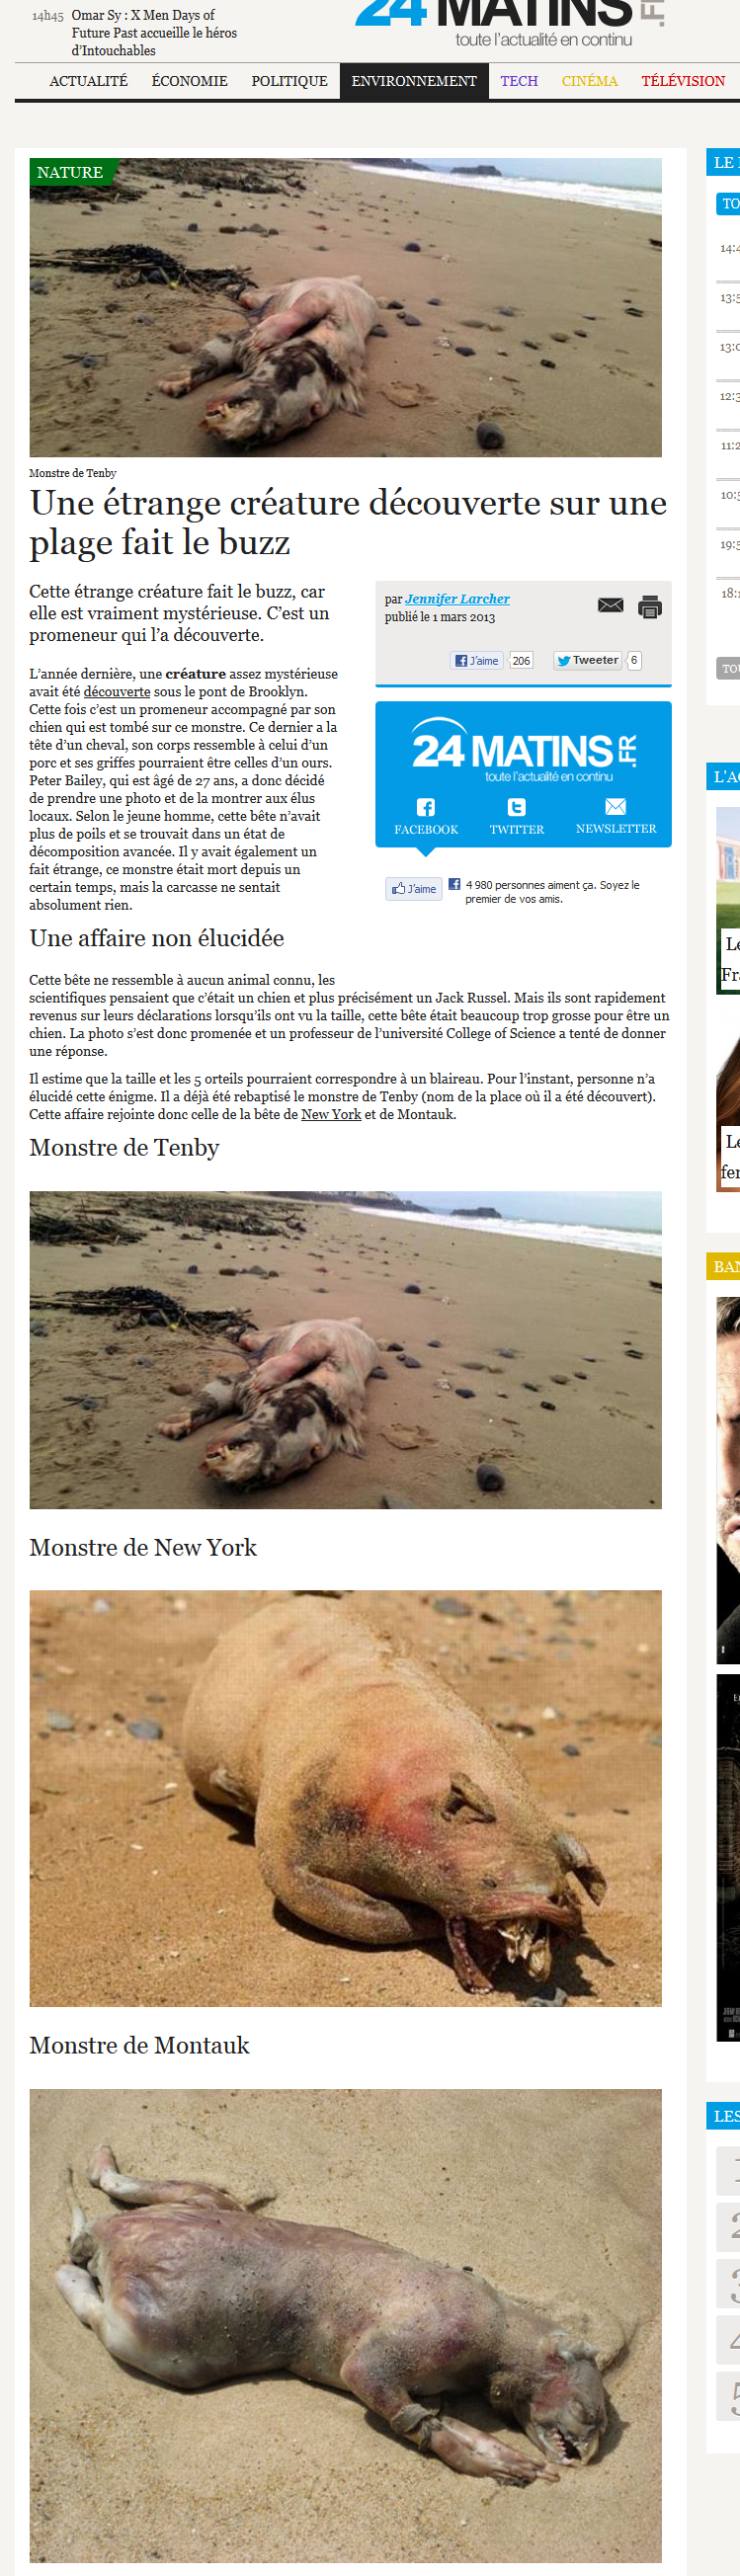 Description : http://revue-du-jeudi.blml.fr/wp-content/uploads/2013/03/hfedjeah.png